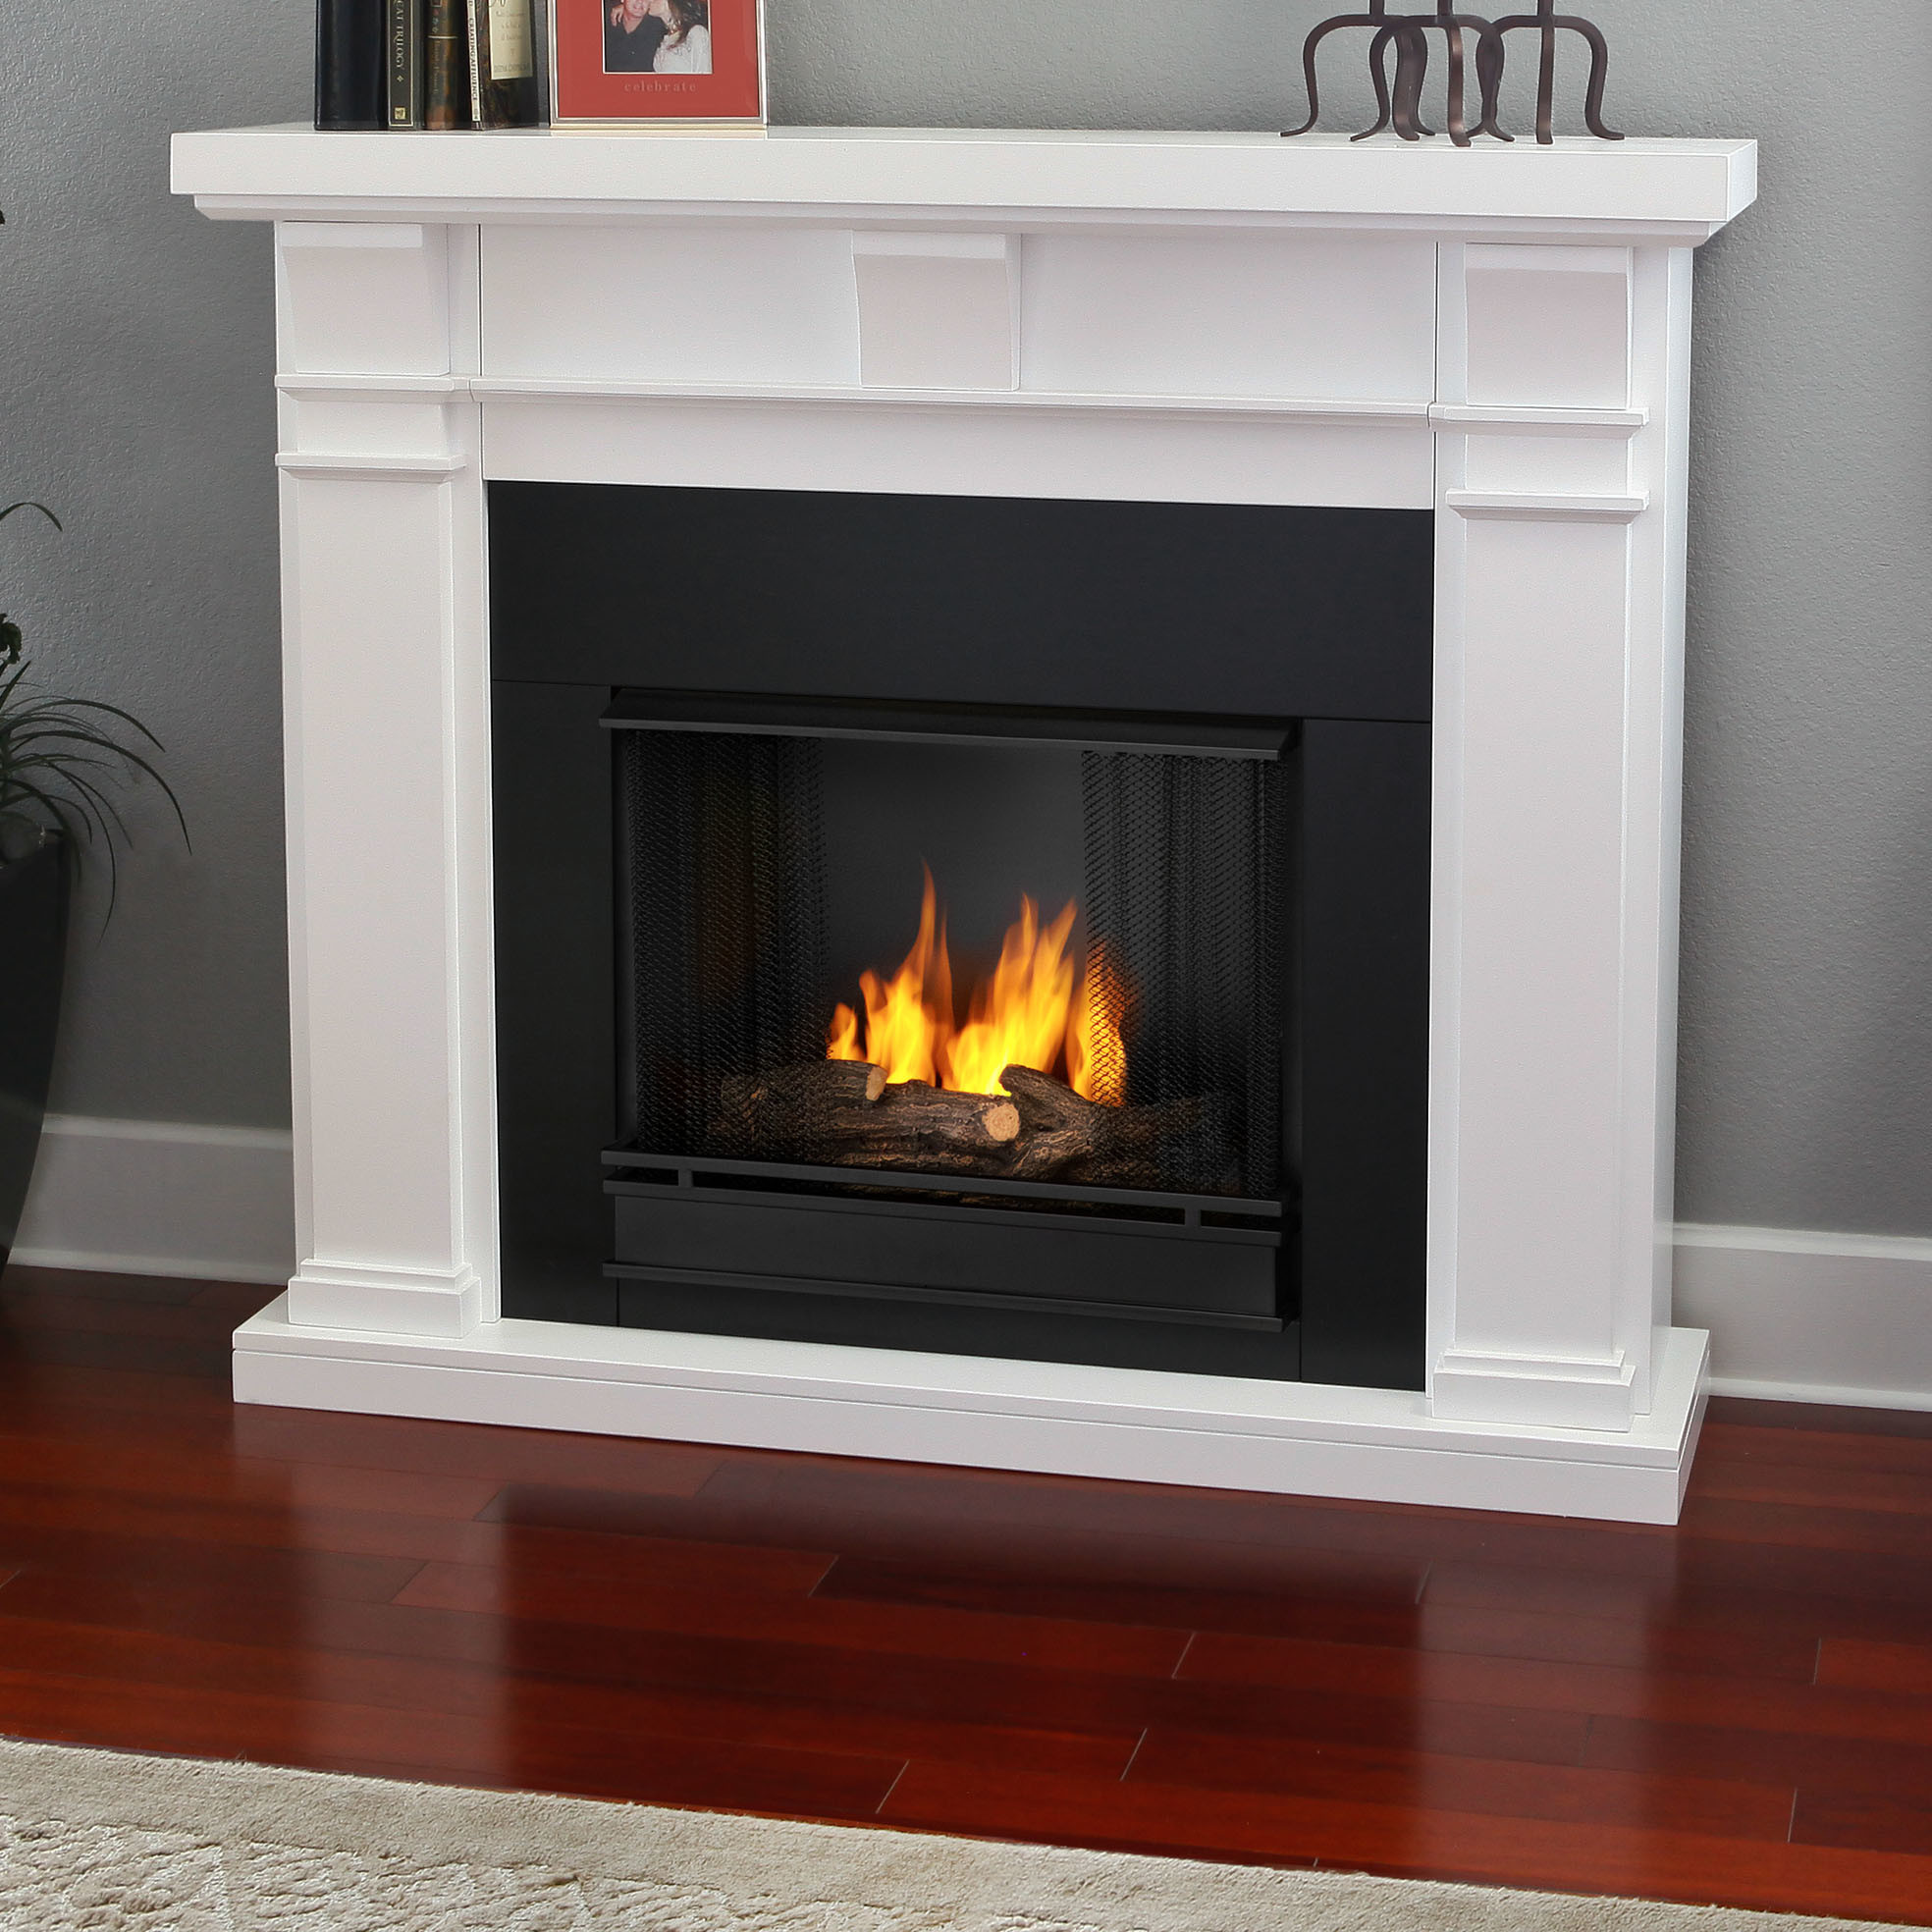 Best ideas about Real Flame Fireplace . Save or Pin Real Flame Porter Gel Fuel Fireplace & Reviews Now.